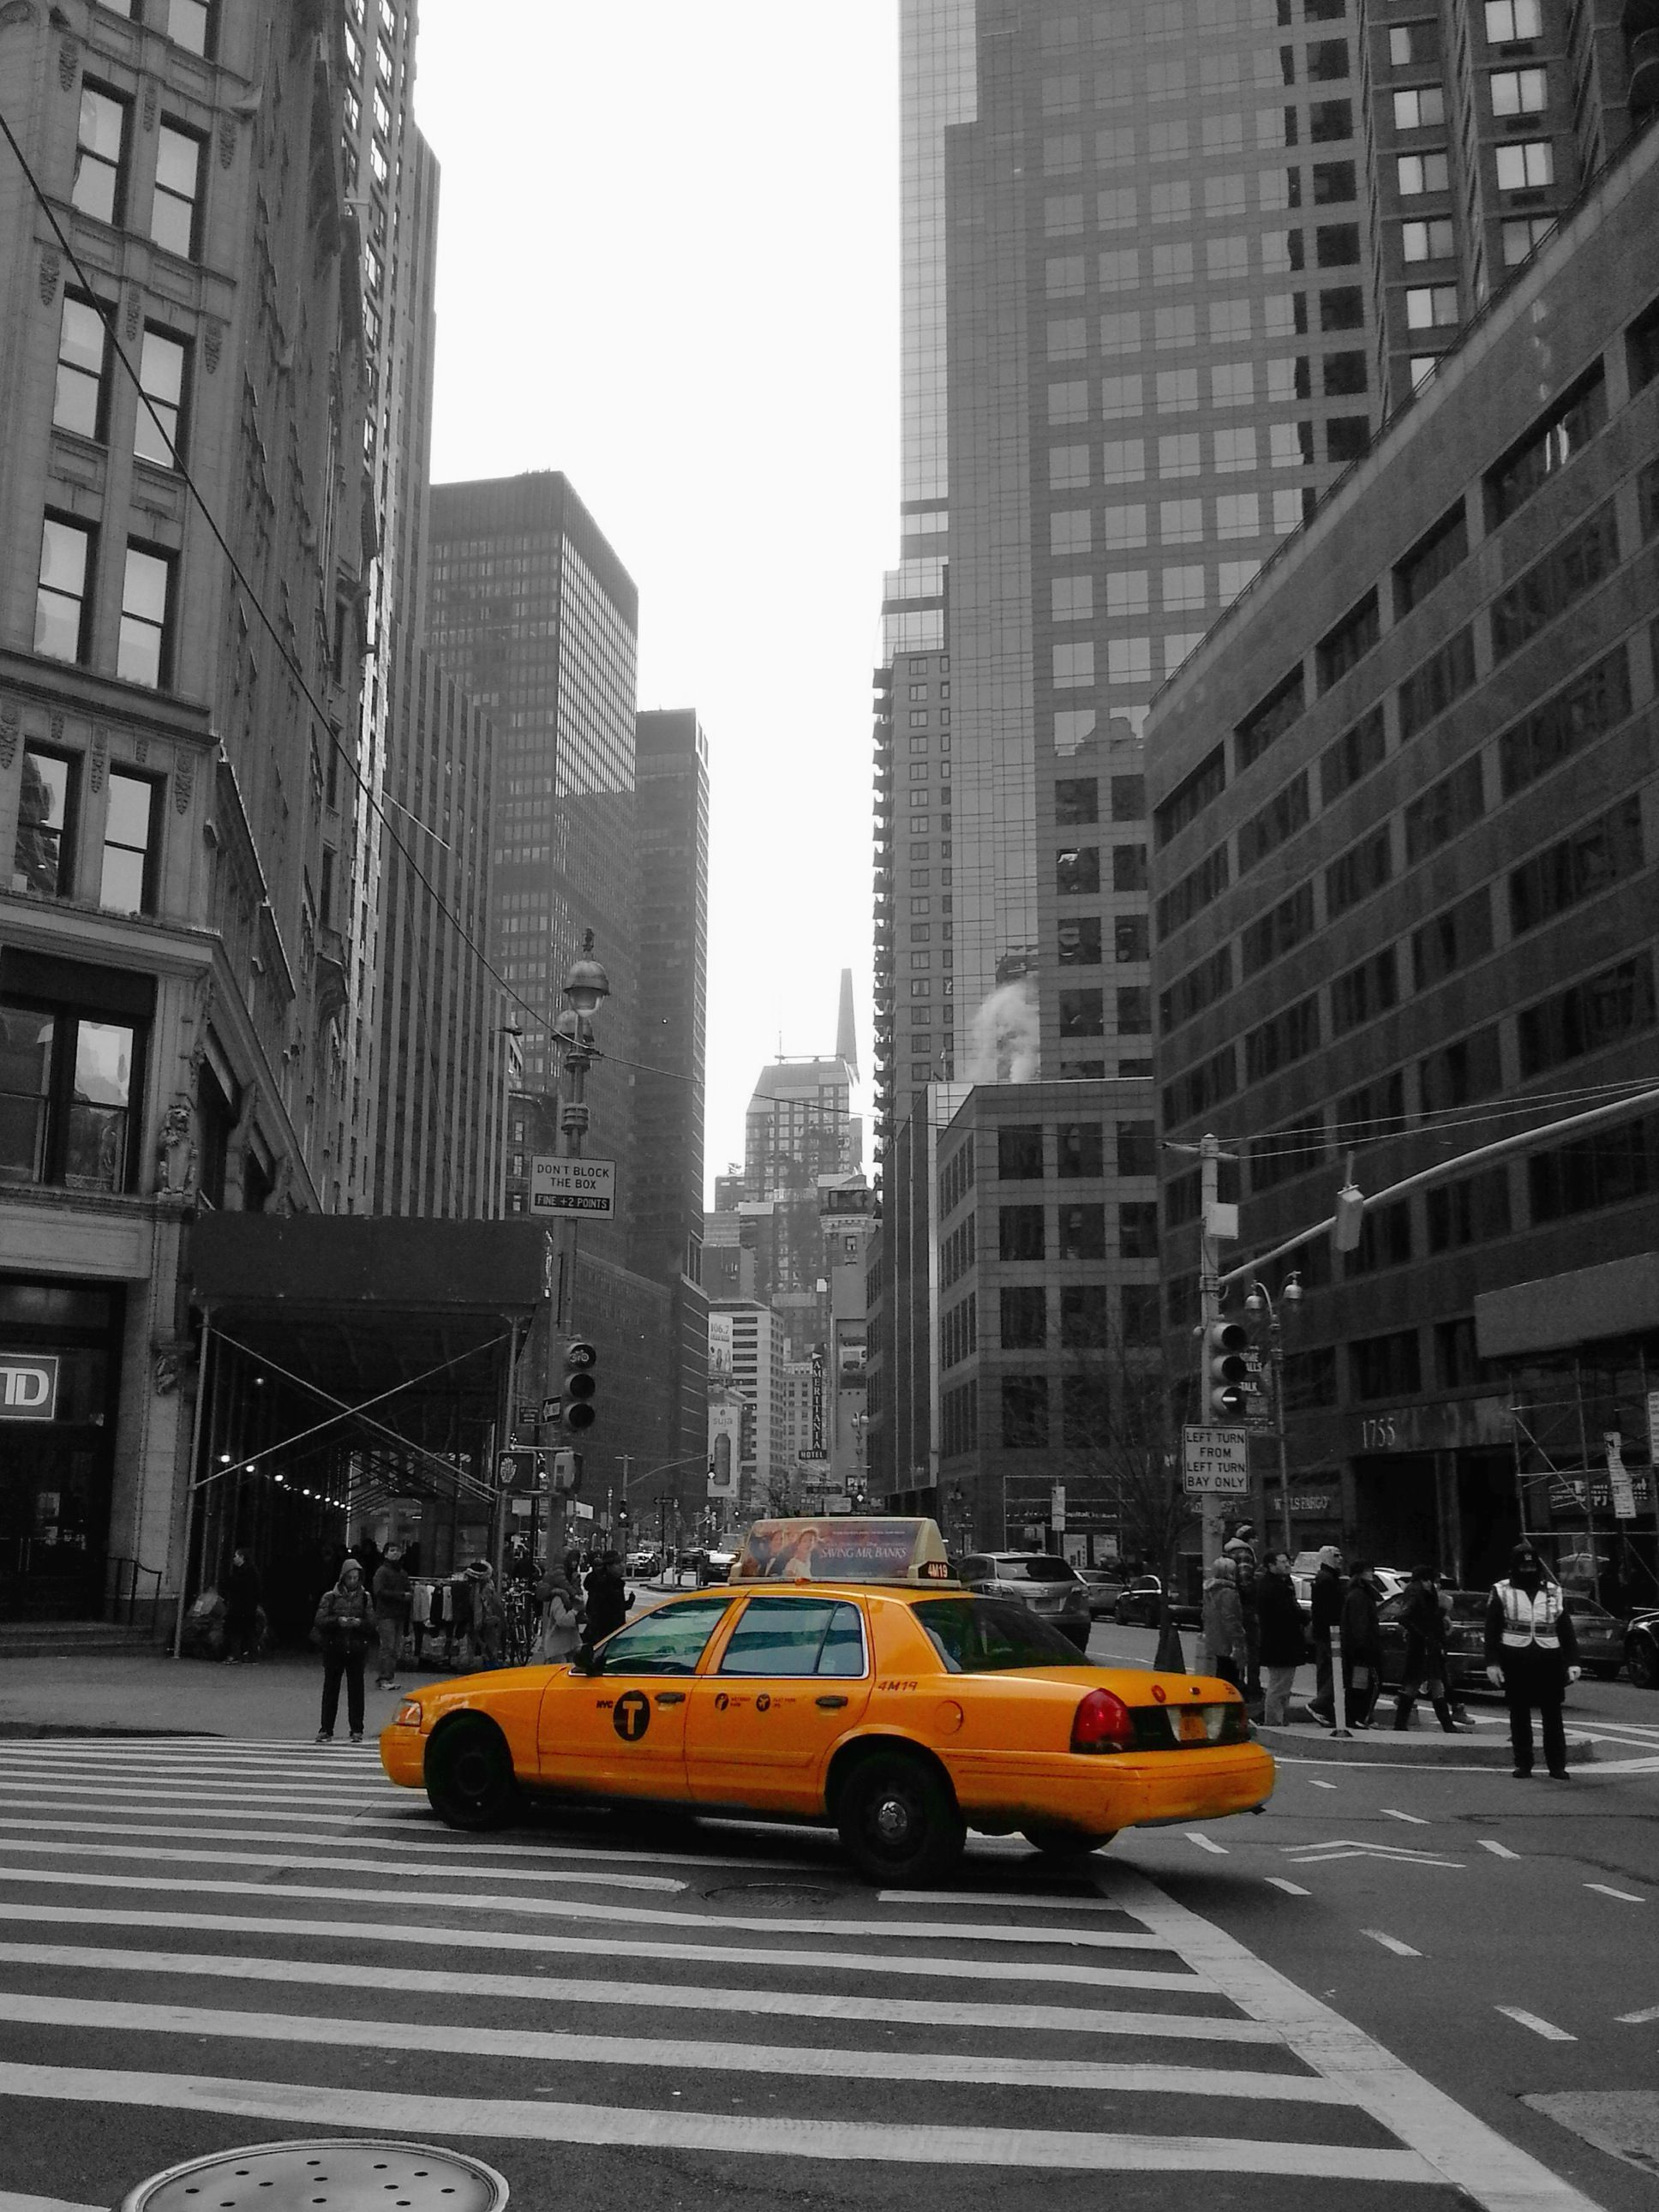 The iconic image of the city, the taxi others can only mimic. Now only used on manhattan island, a lime green taxi is replacing around the suburbs